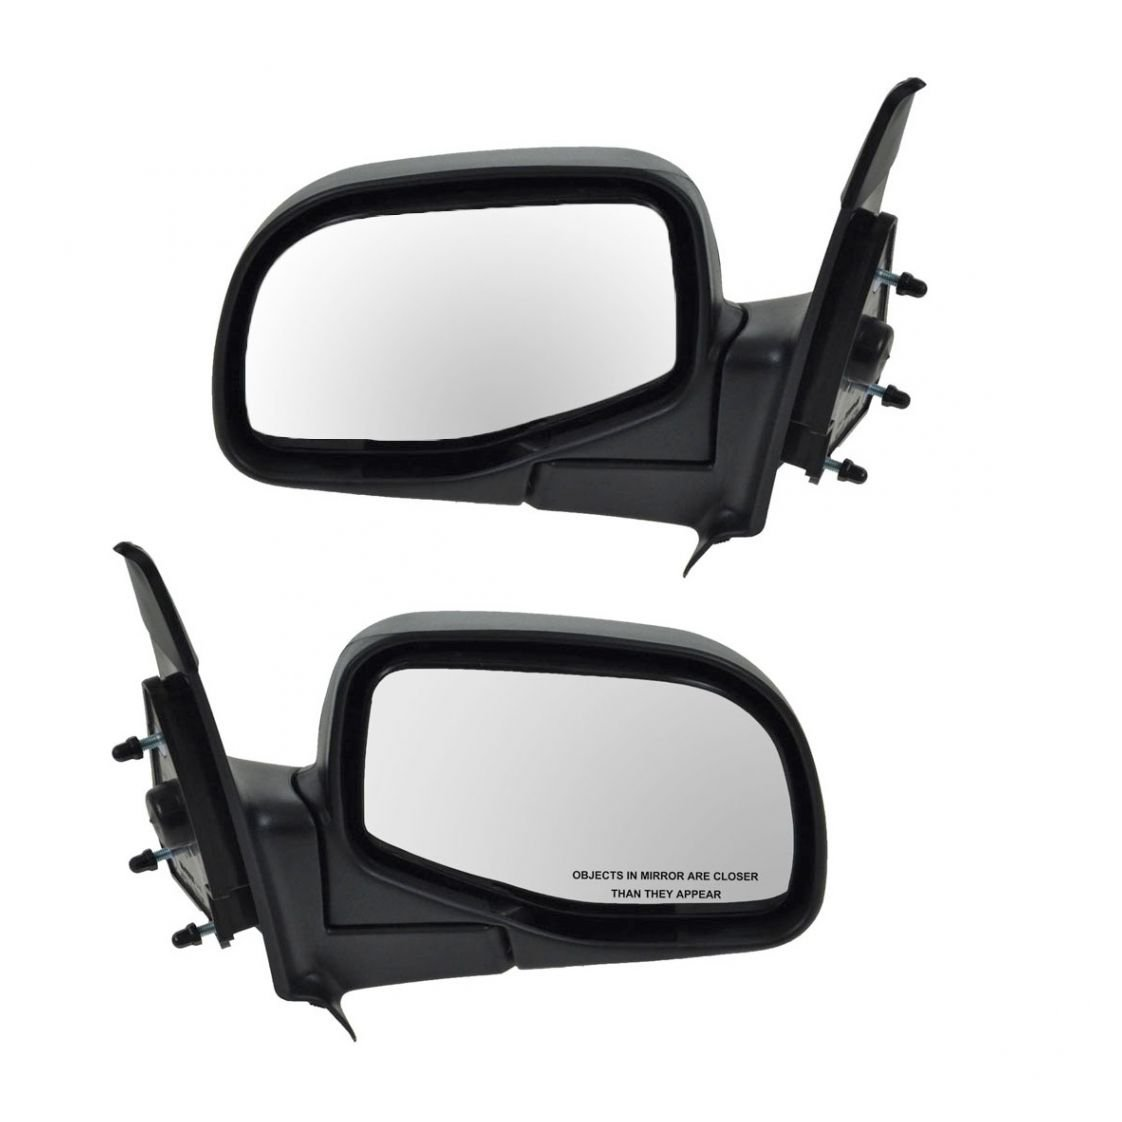 98-05 Ranger B-Series Pickup Truck Manual Rear View Mirror Right Passenger Side